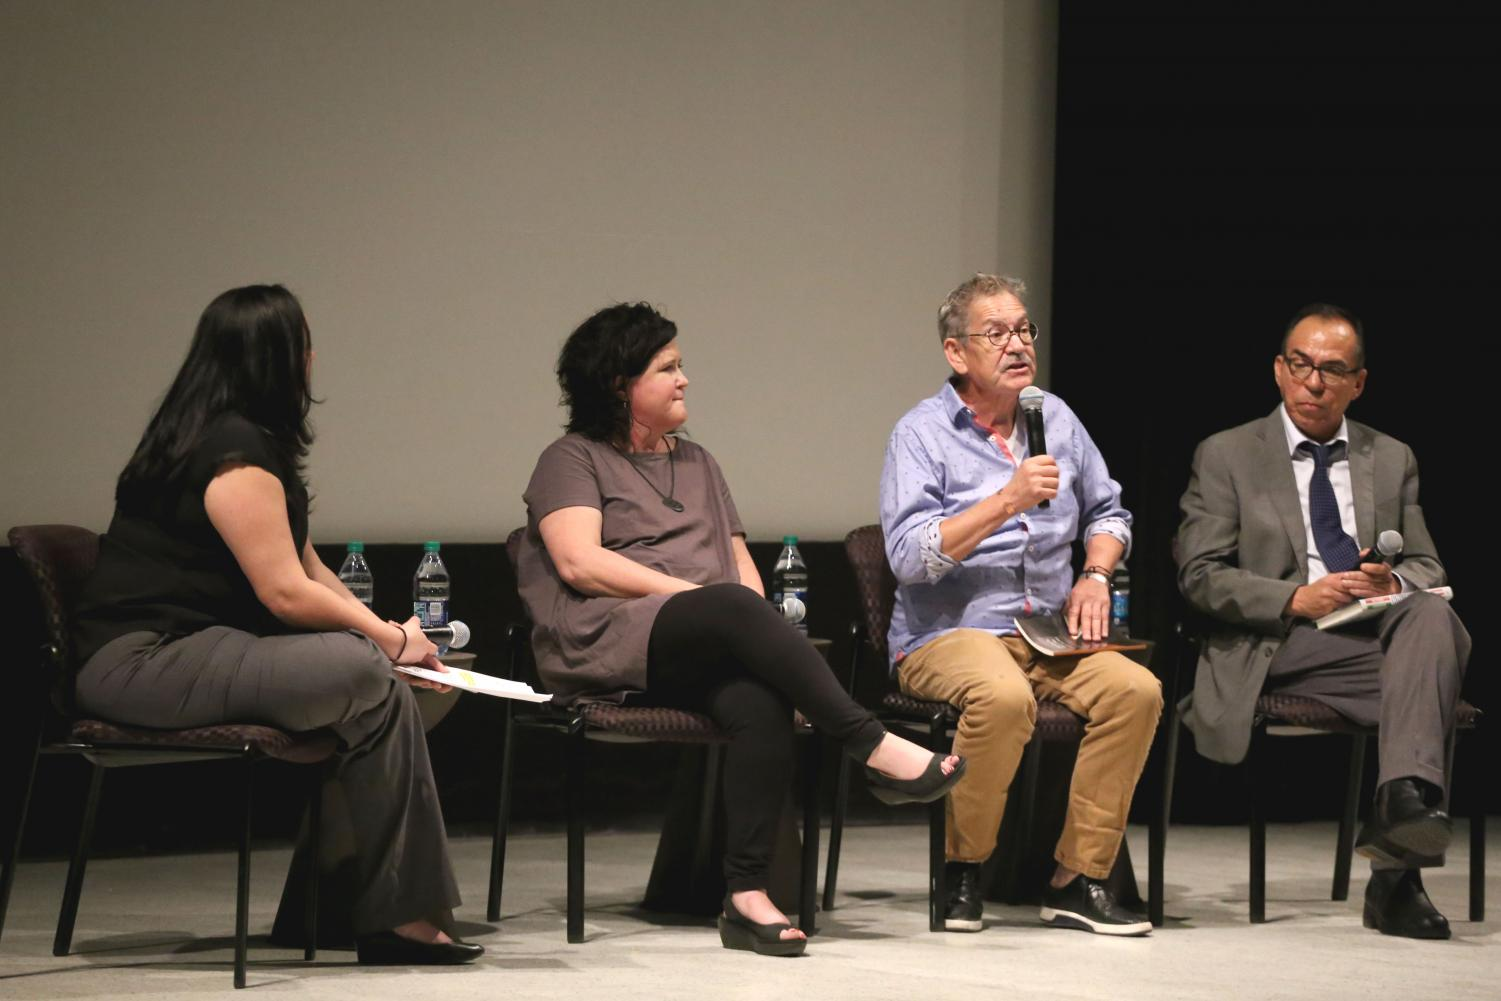 The+El+Paso+Times+Live+held+a+panel%2C+where+they+examined+the+U.S.+and+Mexico+border+on+Thursday%2C+June+7+at+the+UTEP+Union+Cinema%2C+with+Mexico+border+correspondent+for+the+Dallas+Morning+News+Alfredo+Corchado%2C+Director+of+the+Rubin+Center+Kerry+Doyle%2C+author+Benjamin+Saenz+and+El+Paso+Times+Editor+Zahira+Torres.